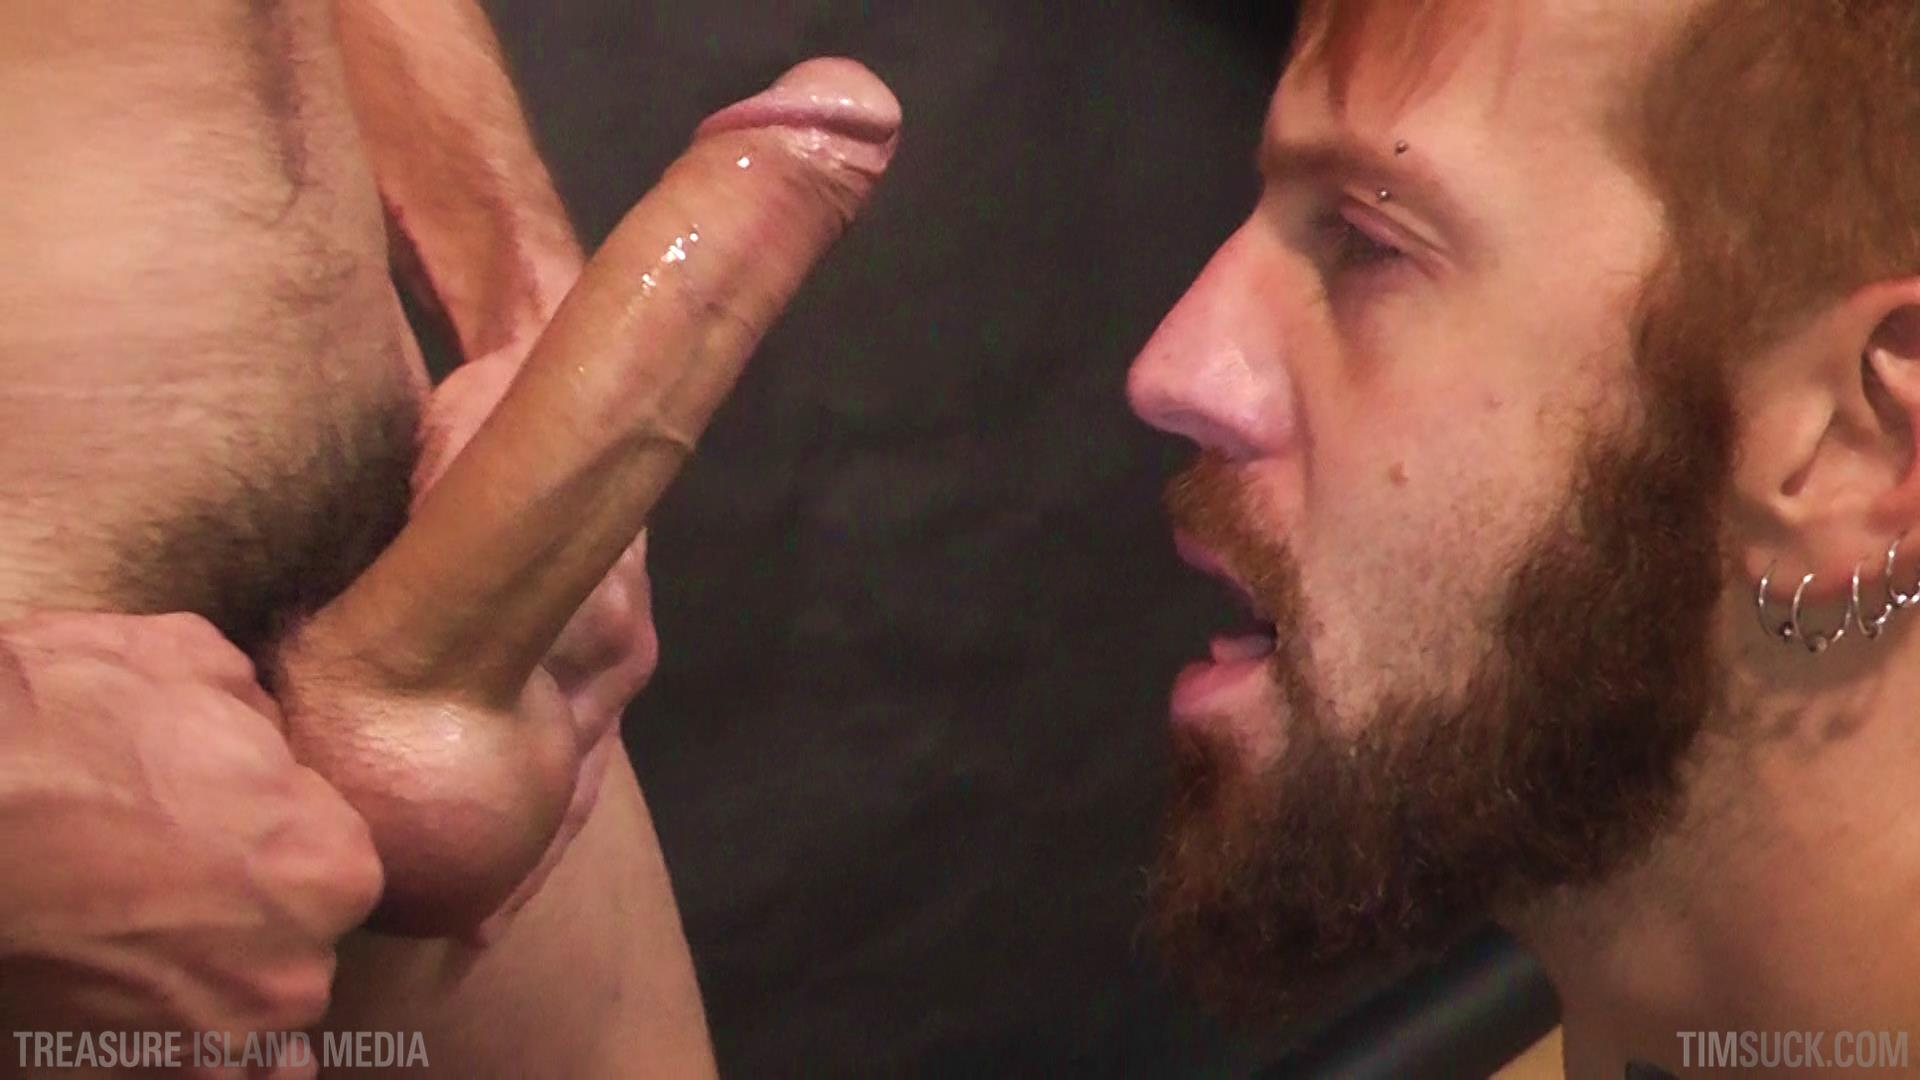 Treasure-Island-Media-TimSuck-Pete-Summers-and-Dean-Brody-Sucking-A-Big-Uncut-Cock-Amateur-Gay-Porn-47 Bearded Ginger Services A Big Uncut Cock And Eats The Cum